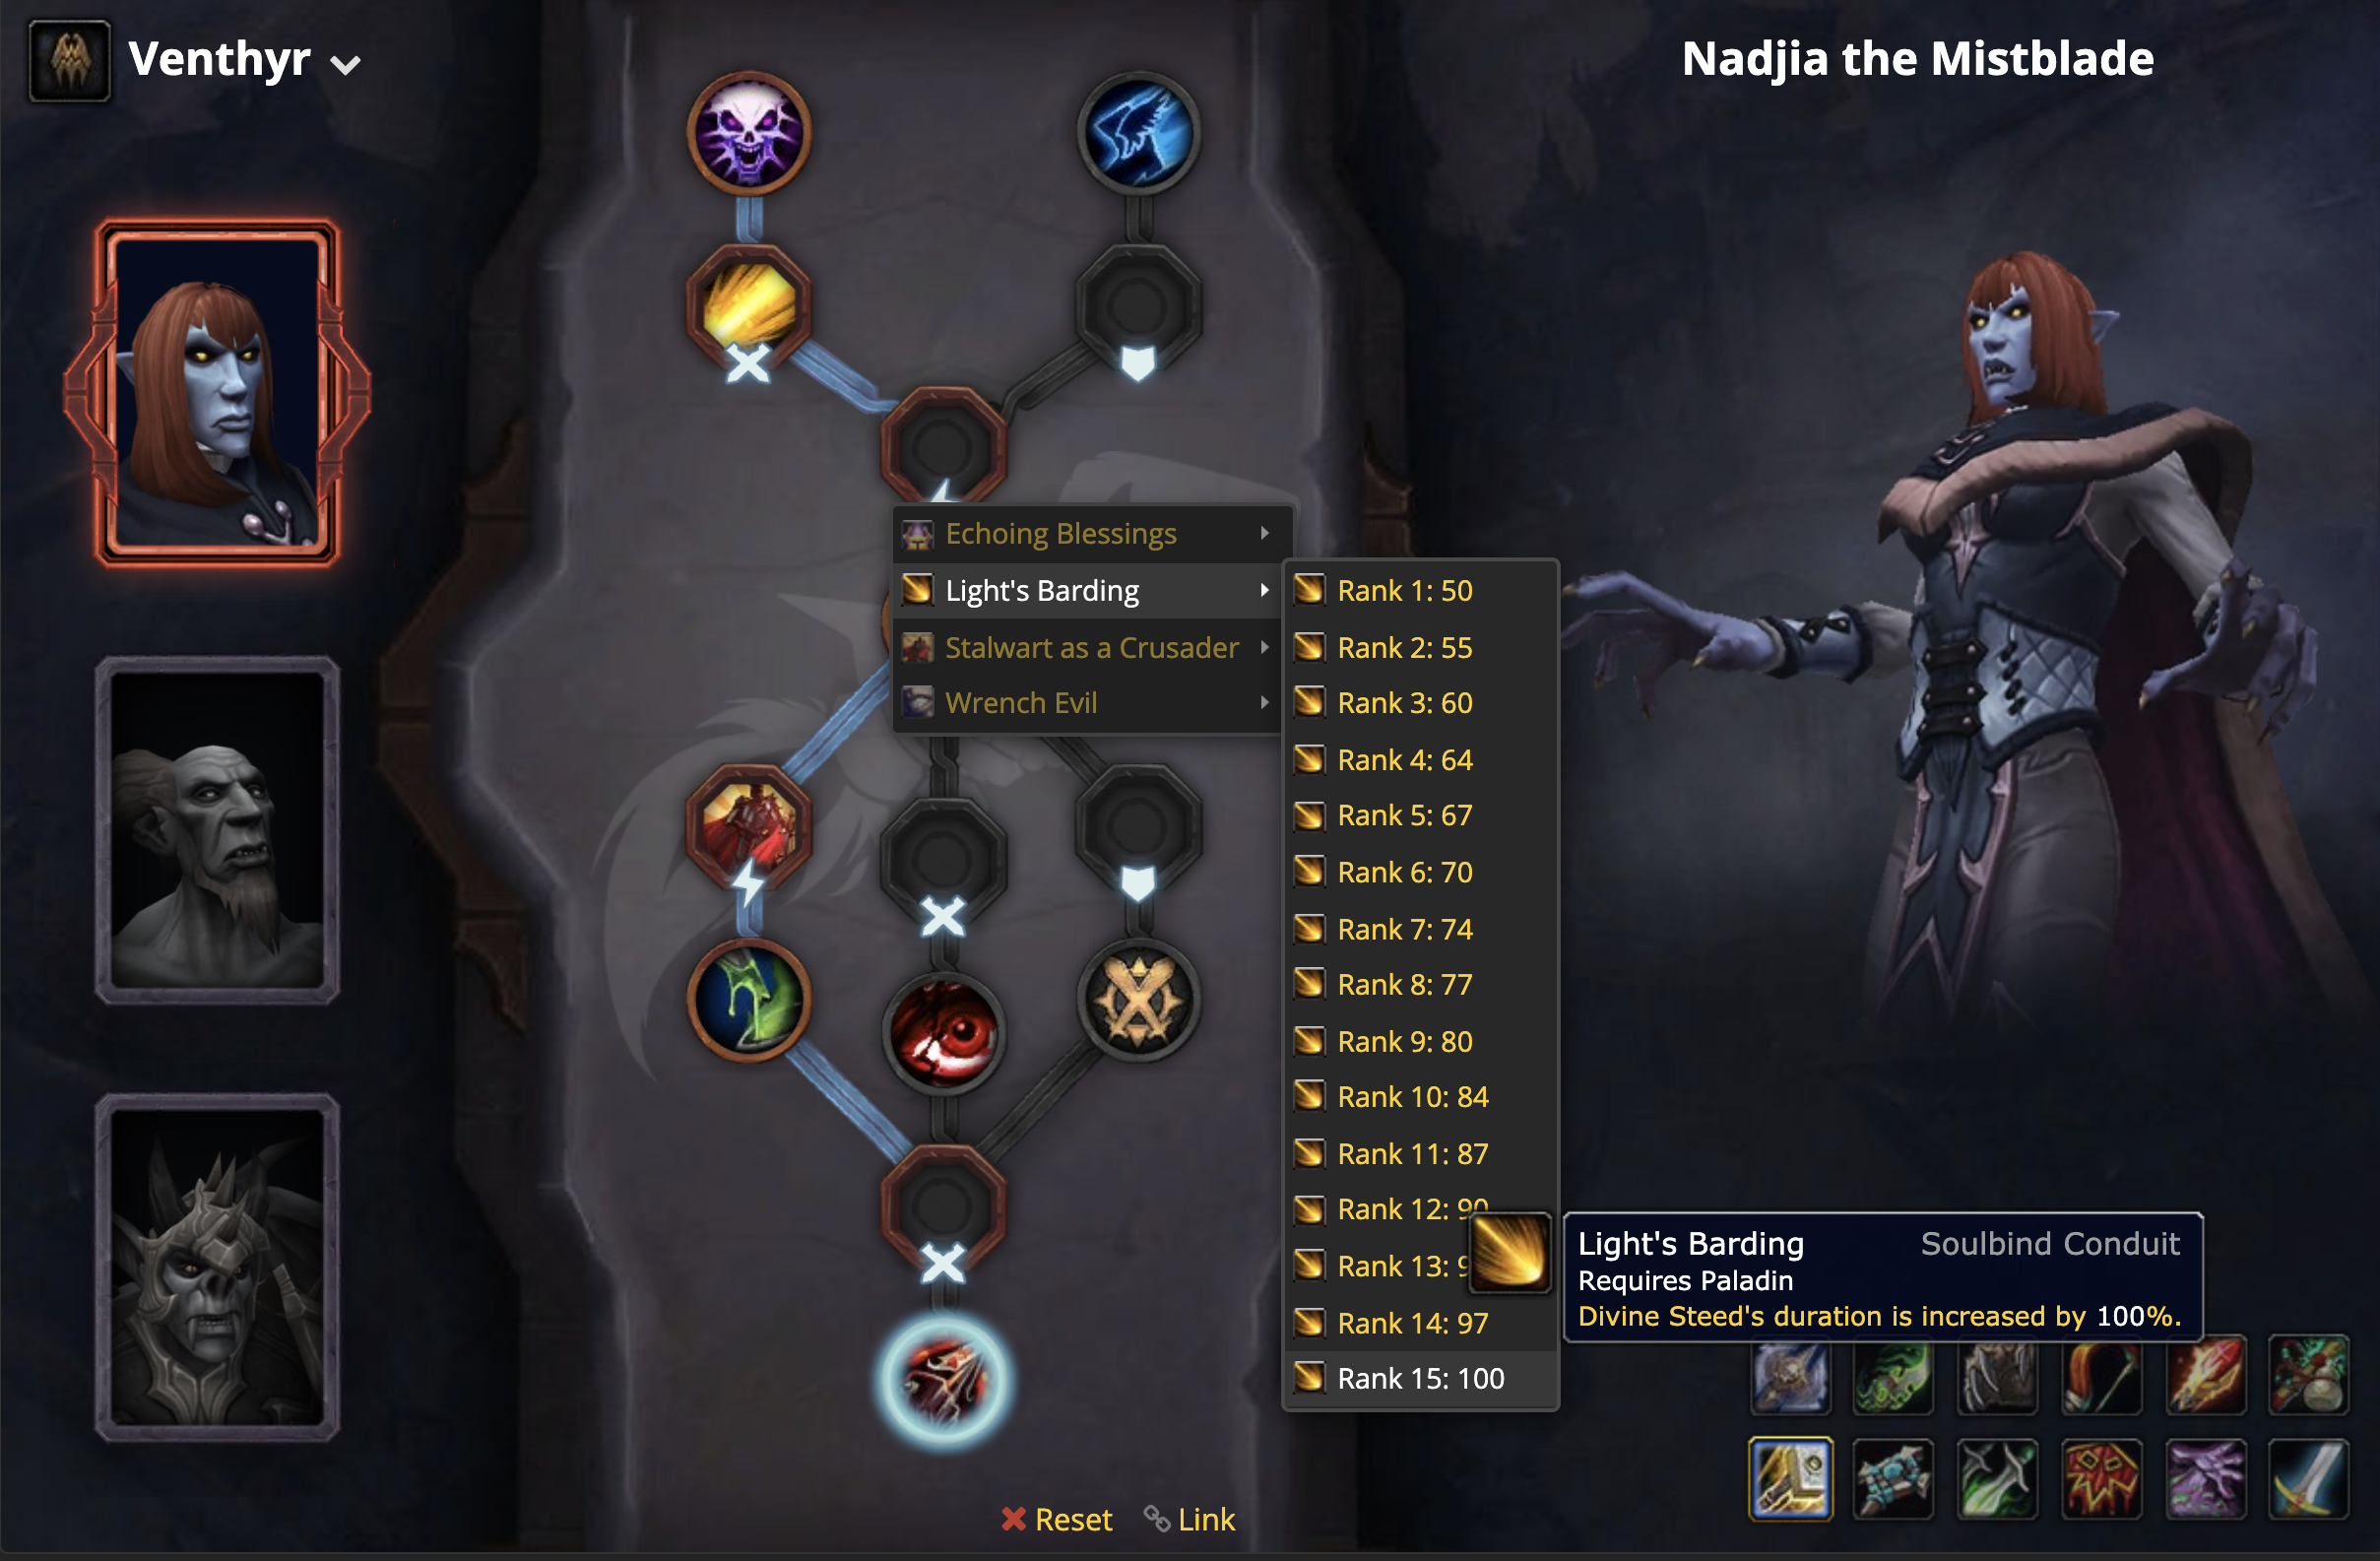 Big Updates to our Shadowlands Soulbind Calculator - Wowhead News